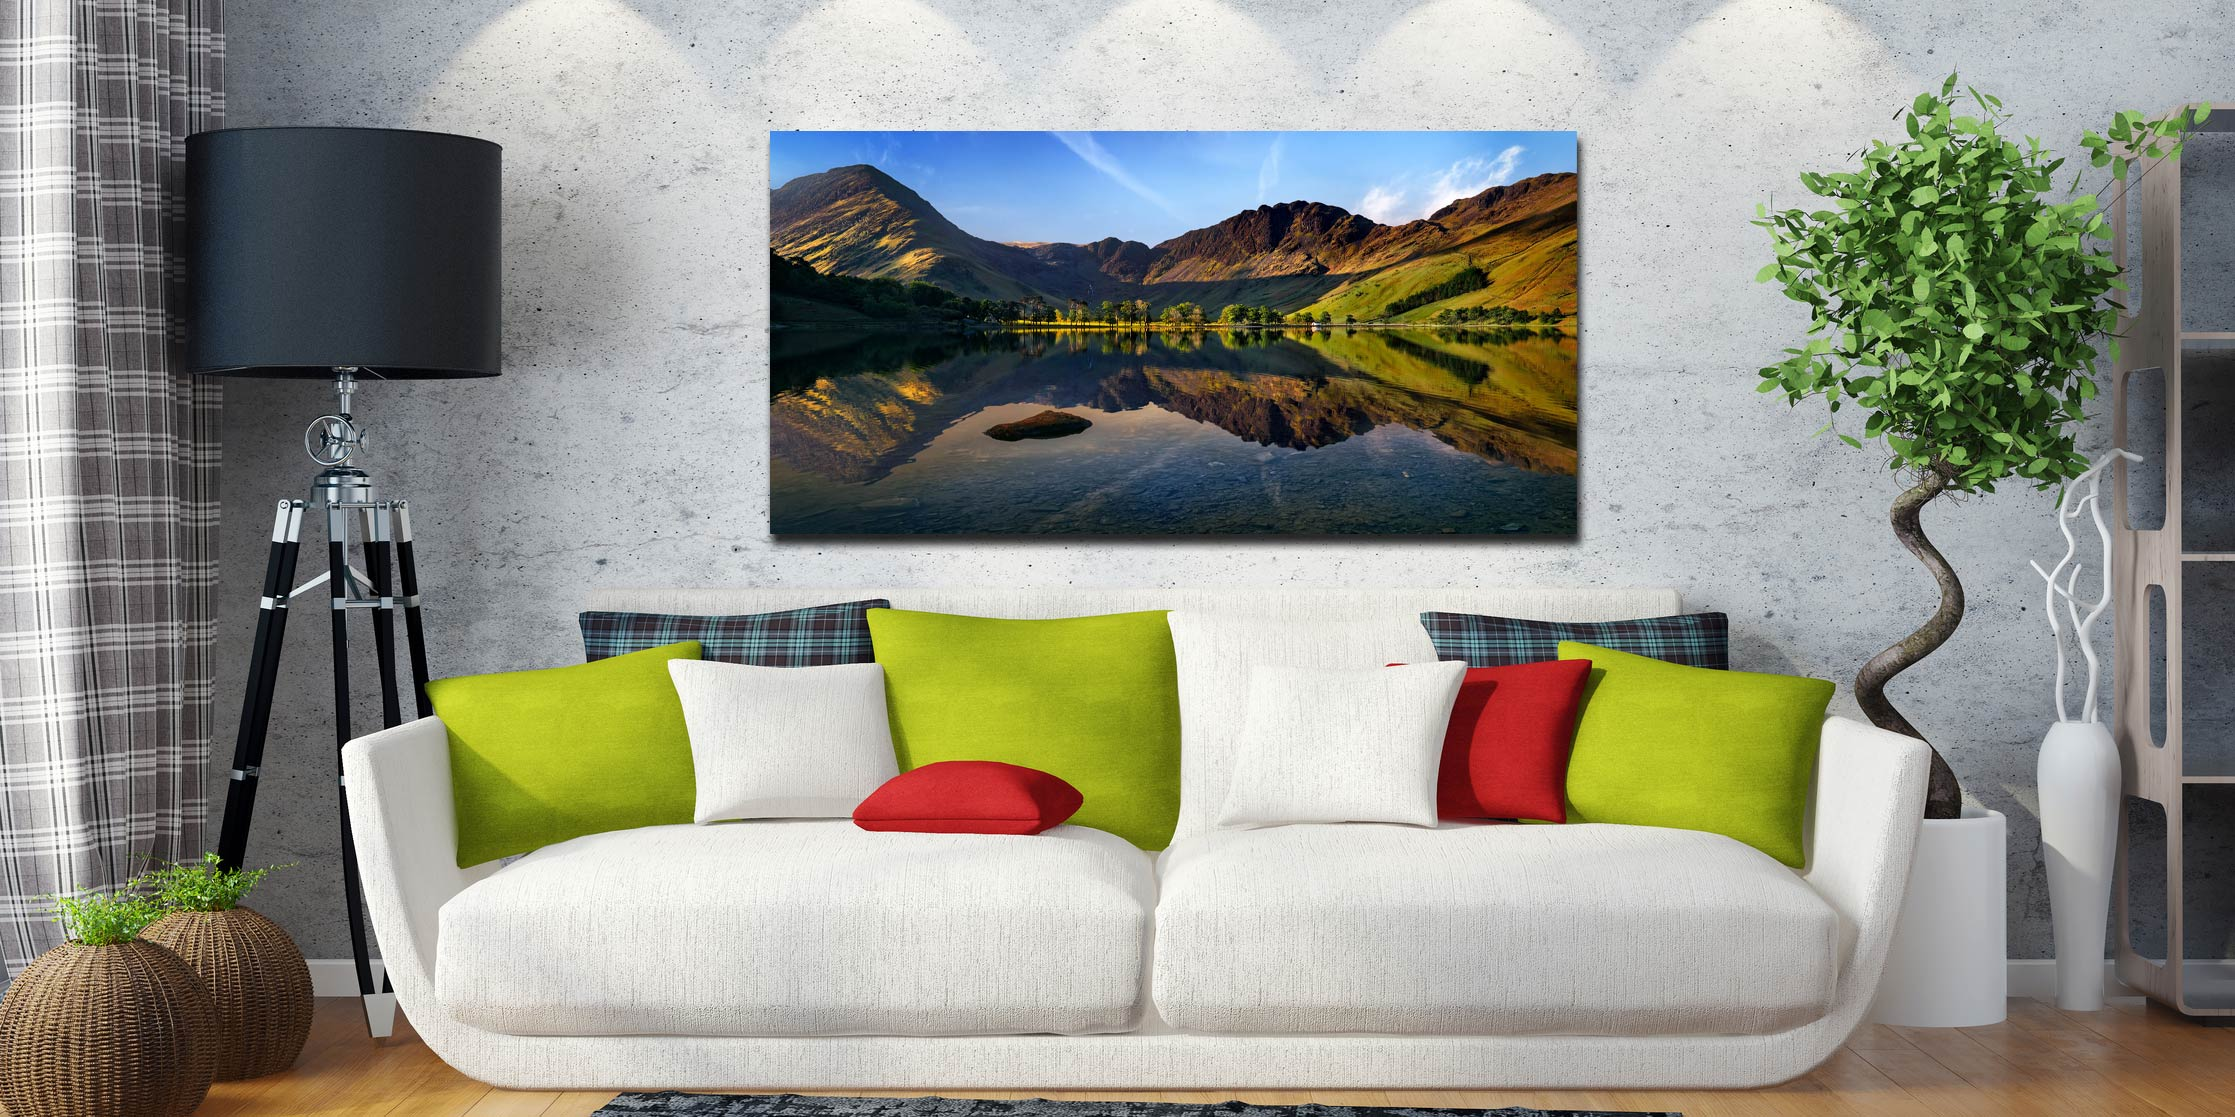 Stillness at Buttermere - Print Aluminium Backing With Acrylic Glazing on Wall